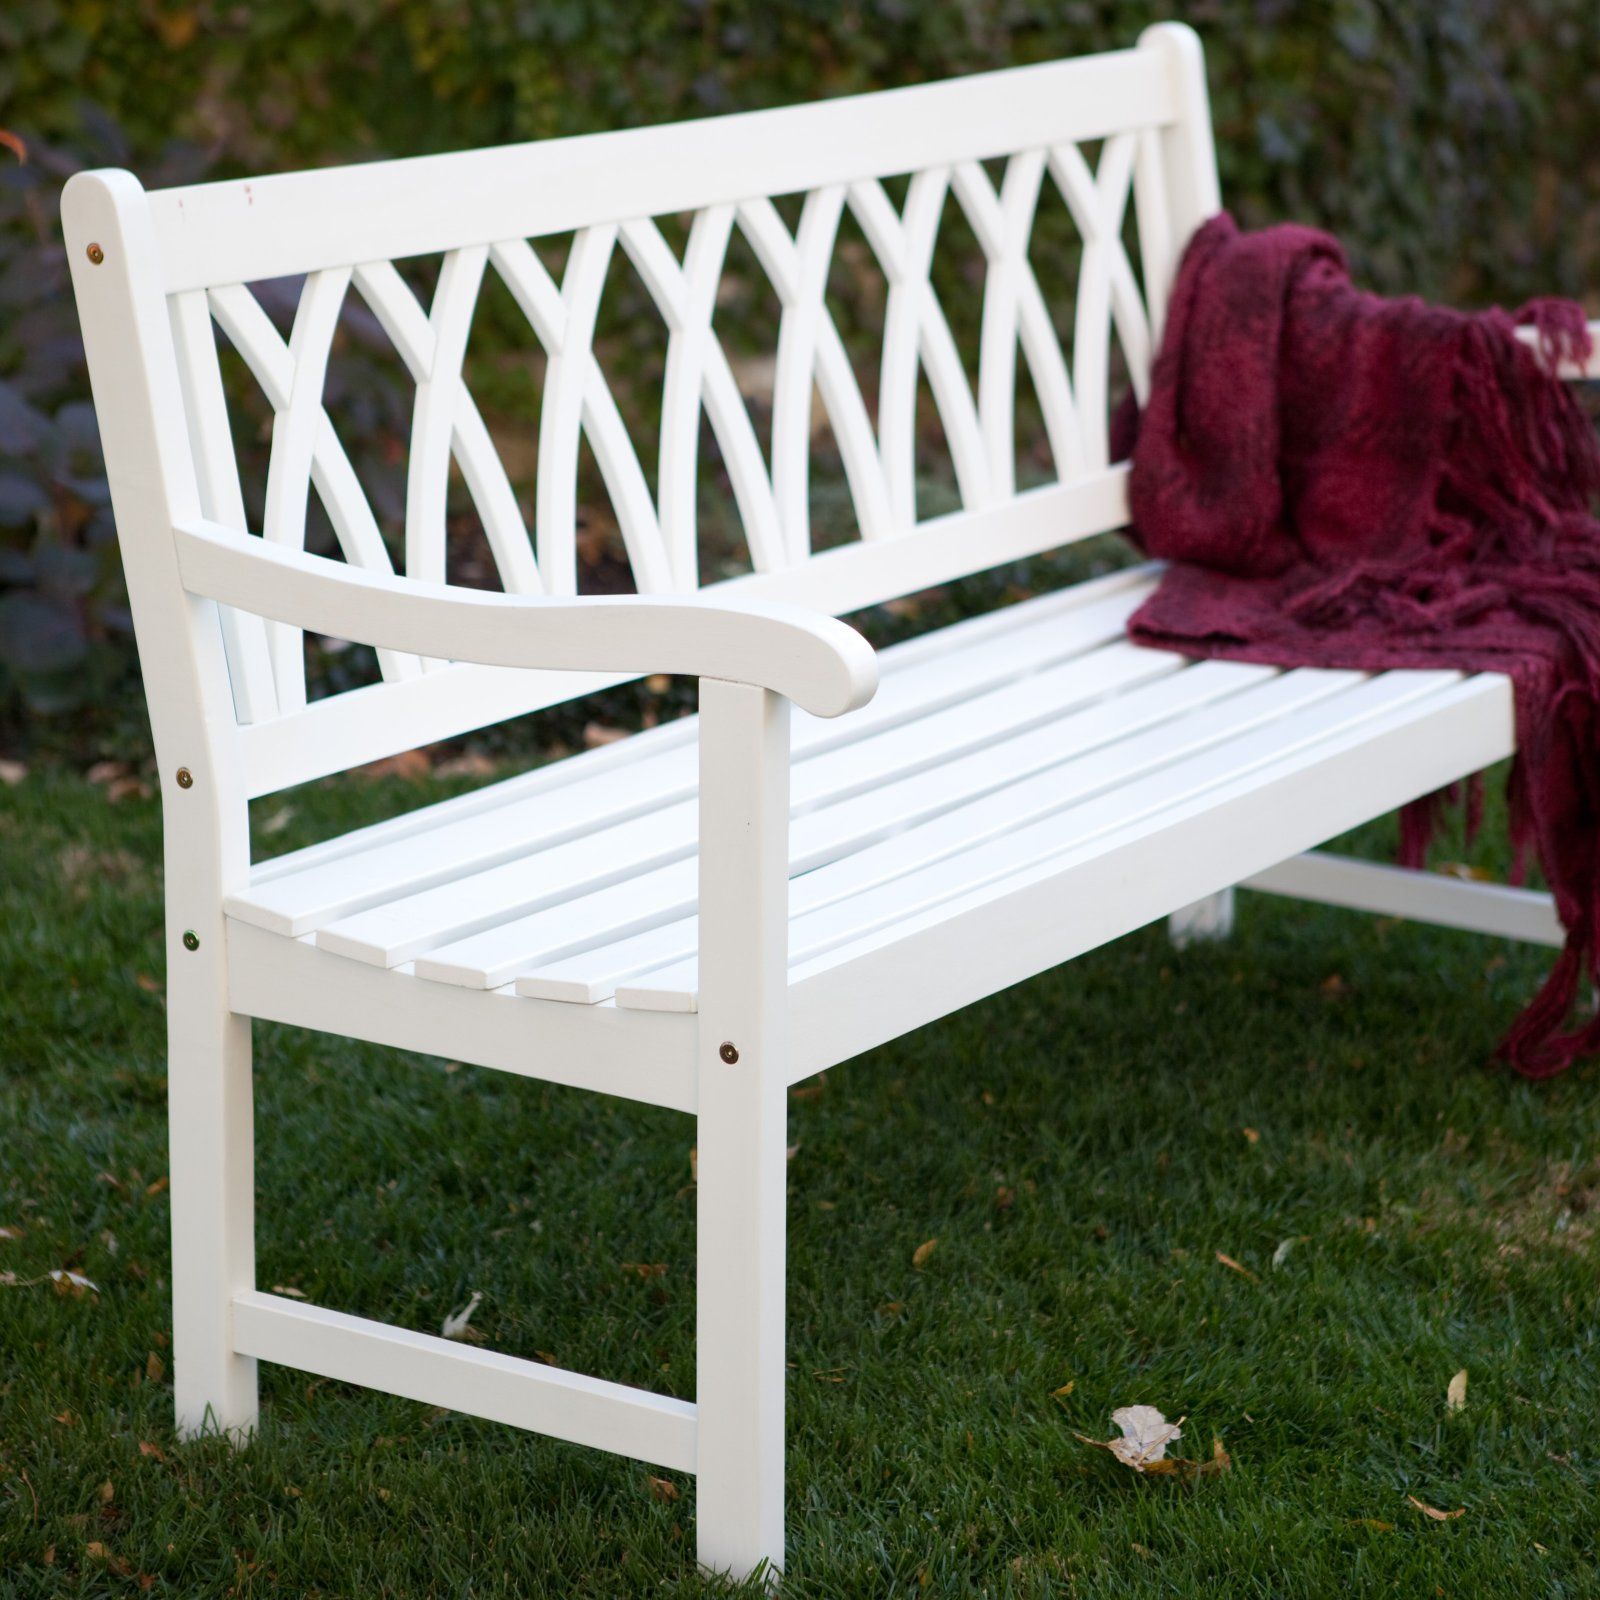 Cunningham 5-ft. Painted Wood Garden Bench - White